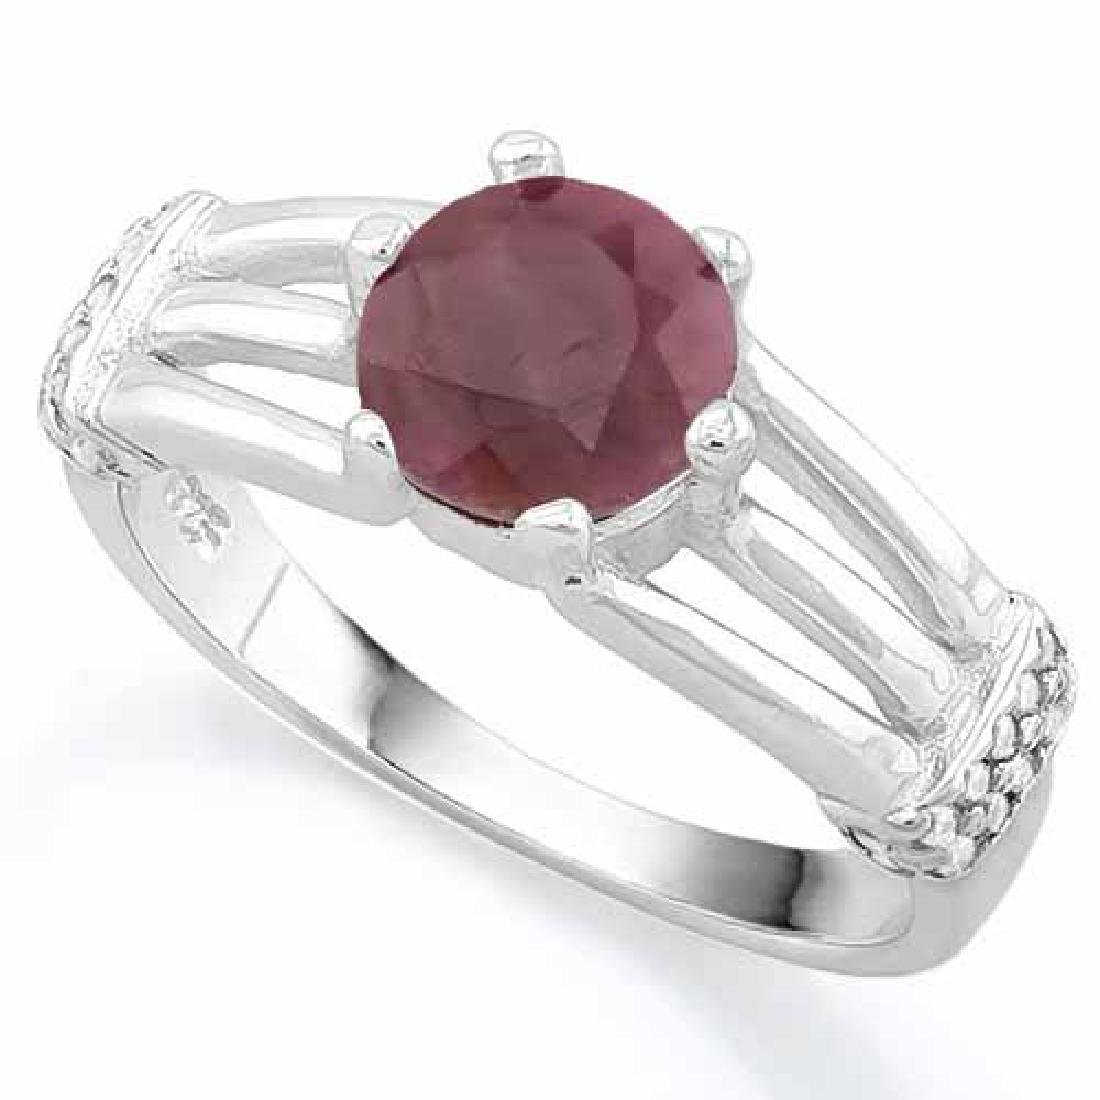 1 3/5 CARAT RUBY & (20 PCS) FLAWLESS CREATED DIAMOND 92